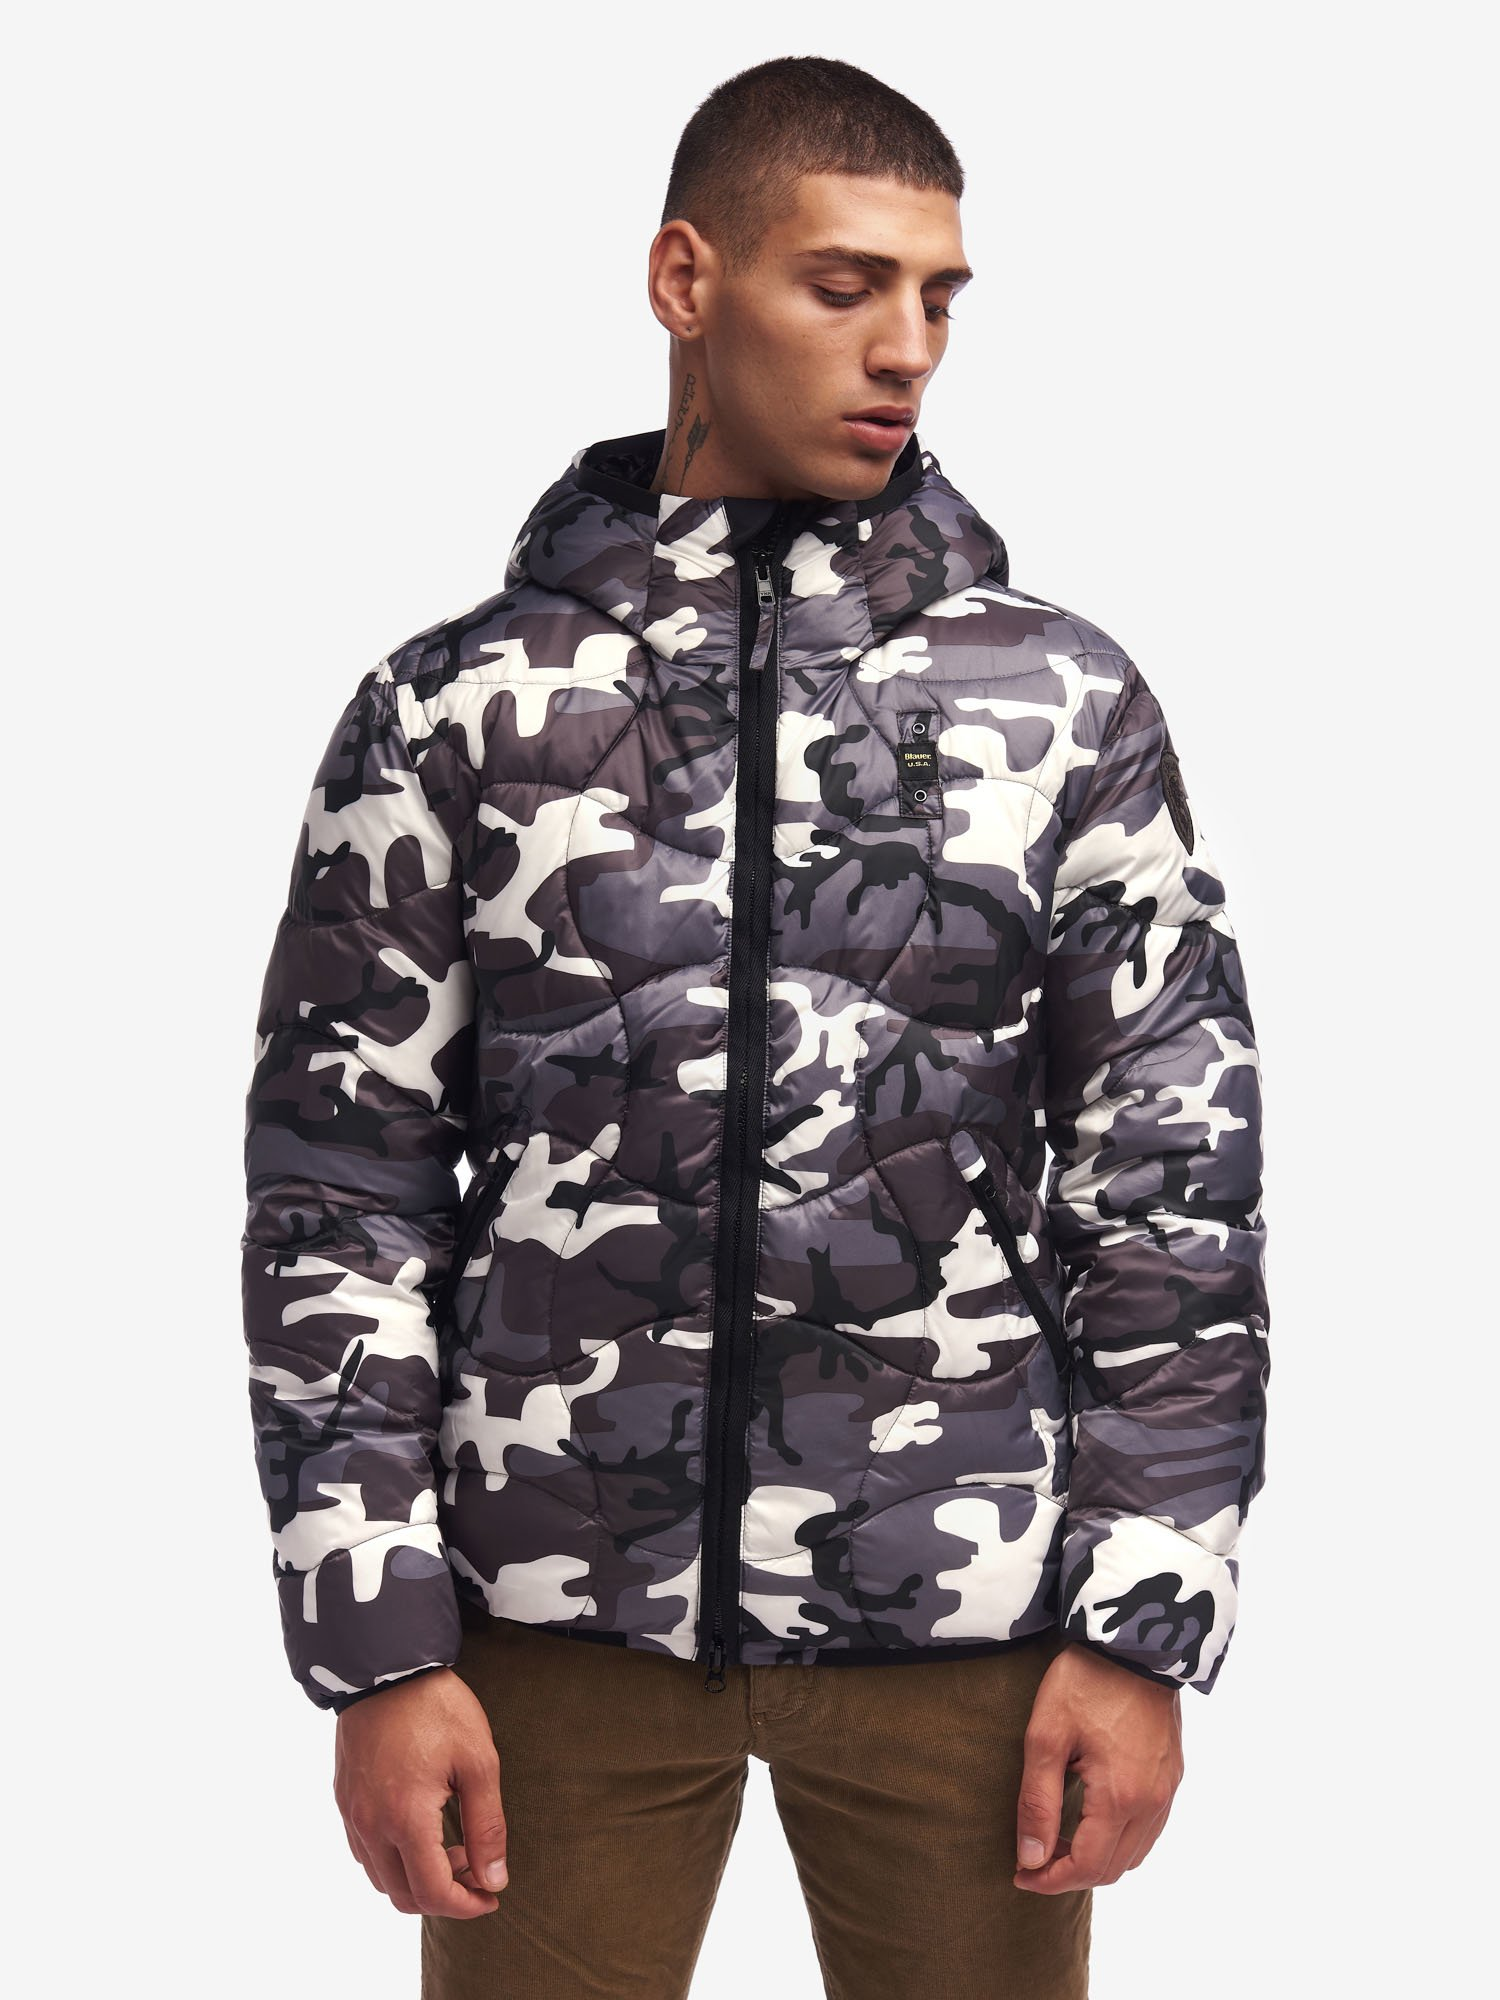 Blauer - ARMSTRONG CAMOUFLAGE DOWN JACKET - Grey Cave - Blauer